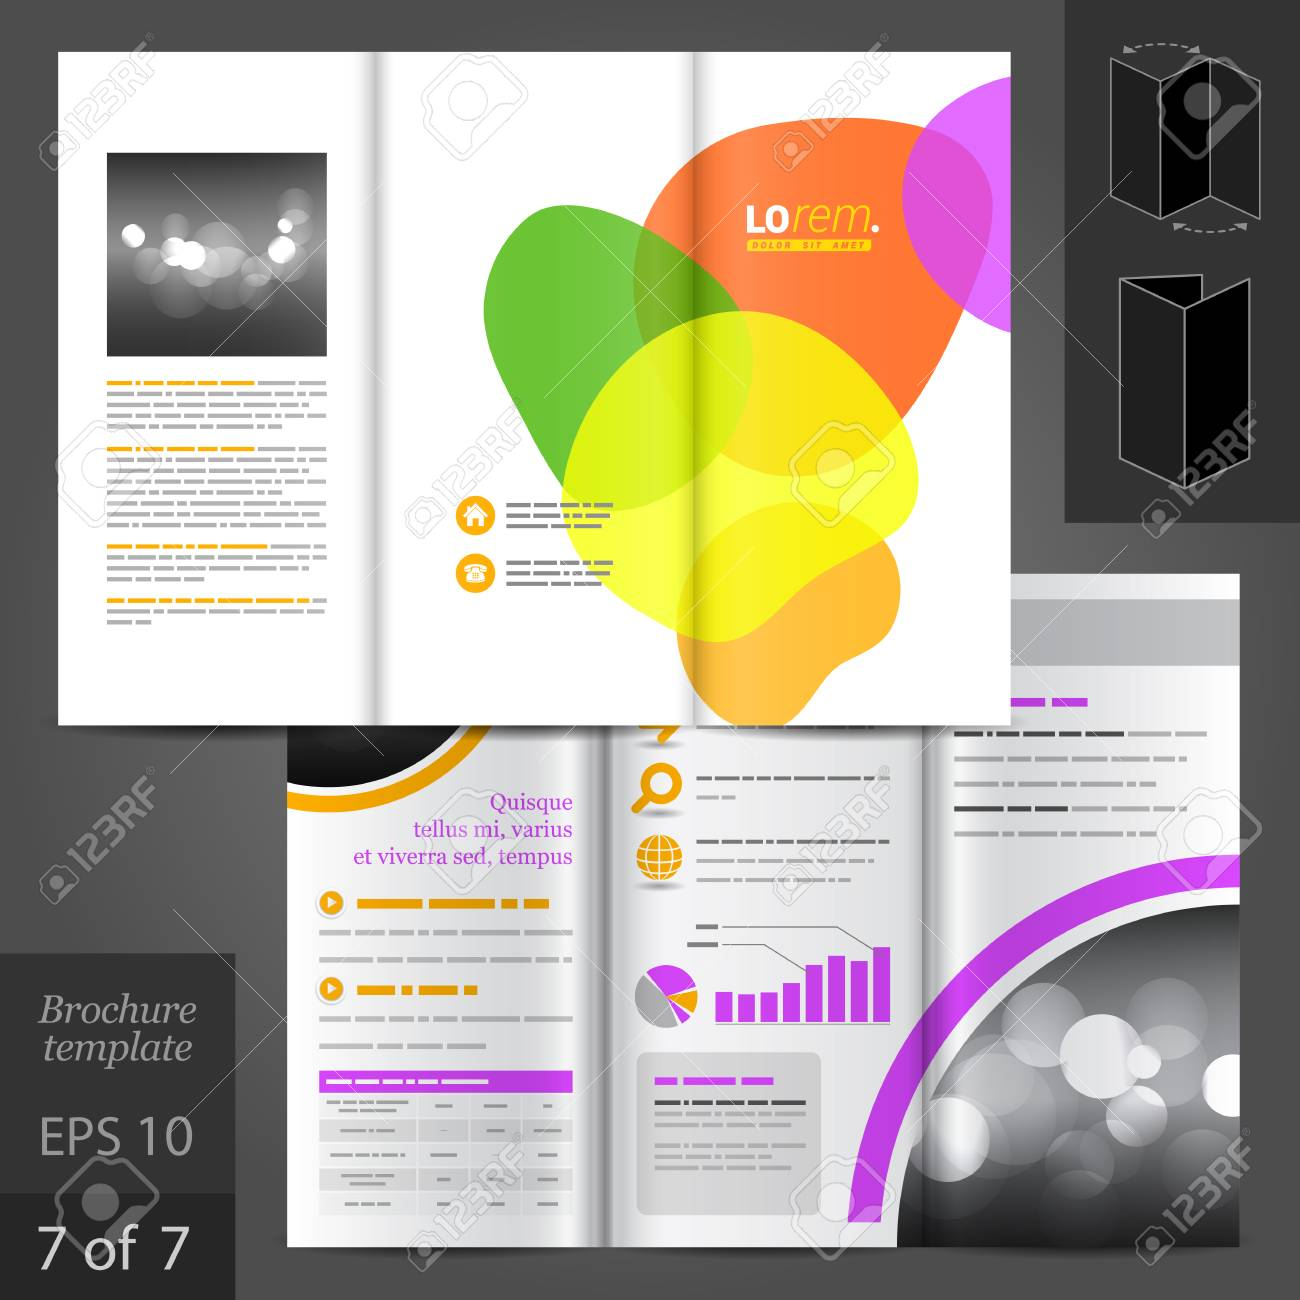 Colorful Vector Creative Brochure Template Design With Art Round